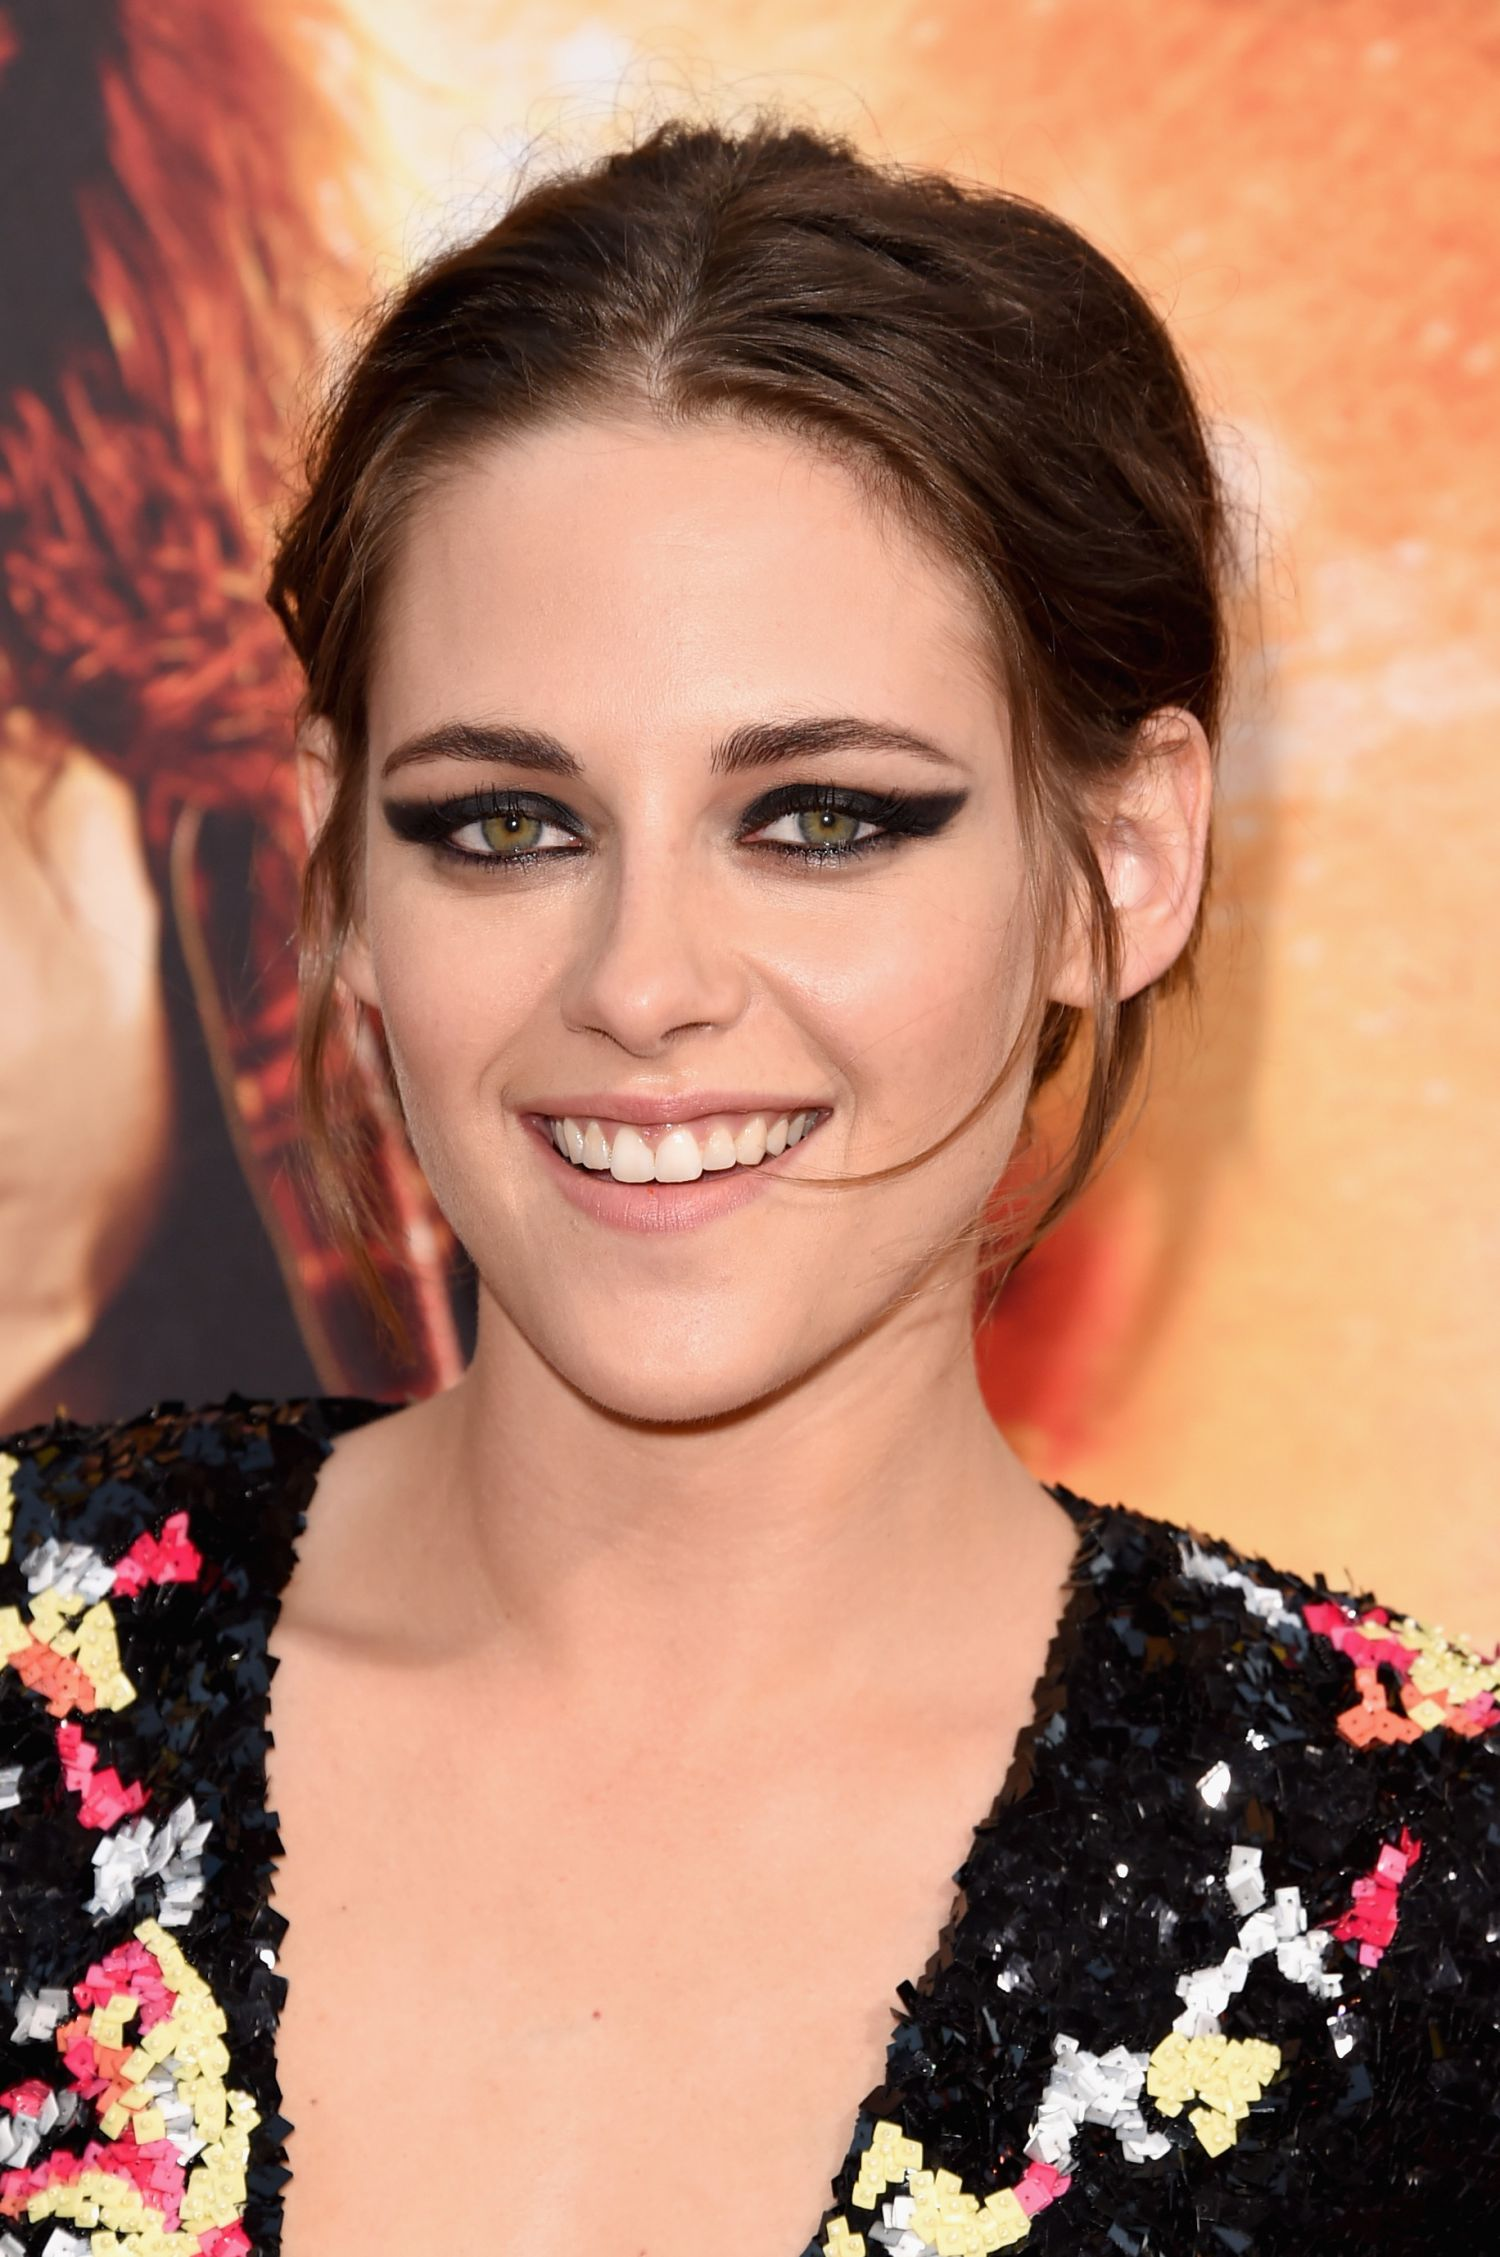 Kristen-Stewart-at-the-Premiere-of-American-Ultra-in-LA-6.jpg